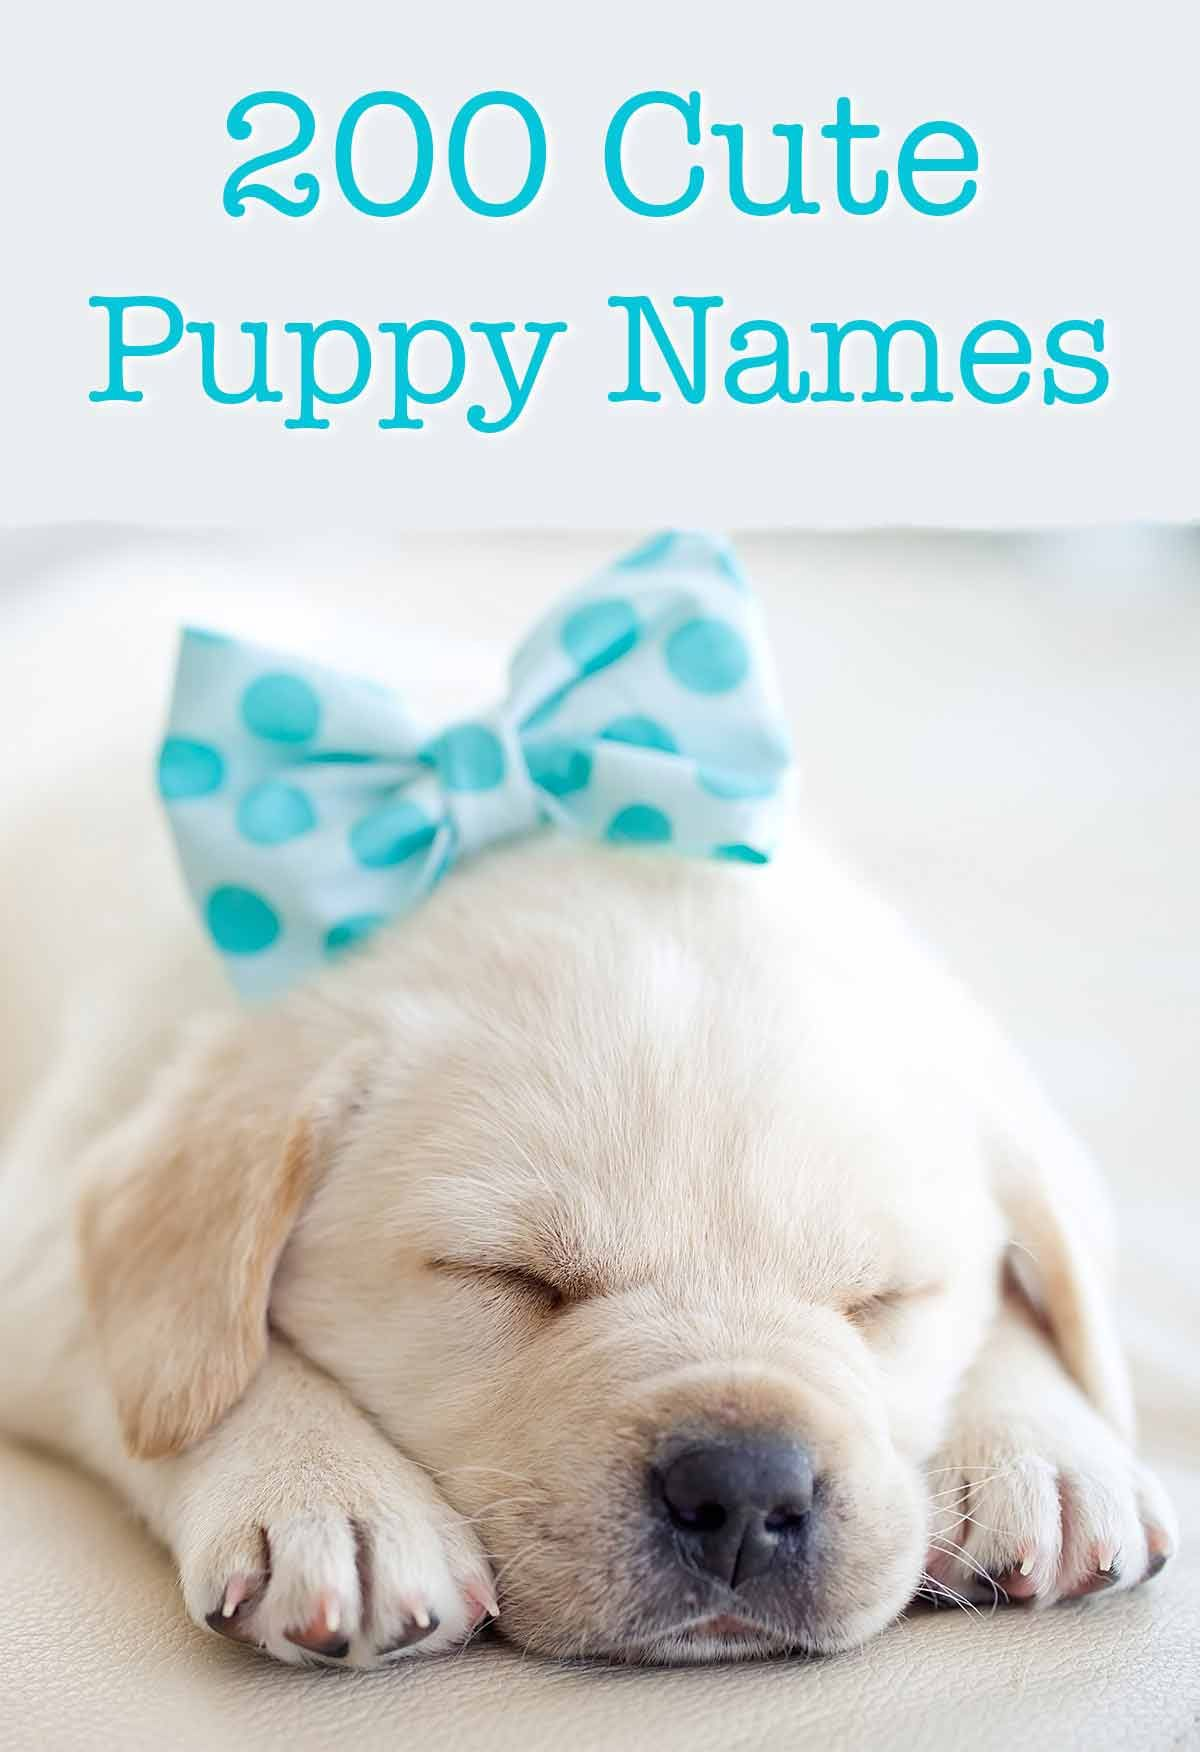 Cute Puppy Names Over 200 Adorable Ideas For Naming Your Dog In 2020 Cute Puppy Names Puppy Names Puppies Names Female